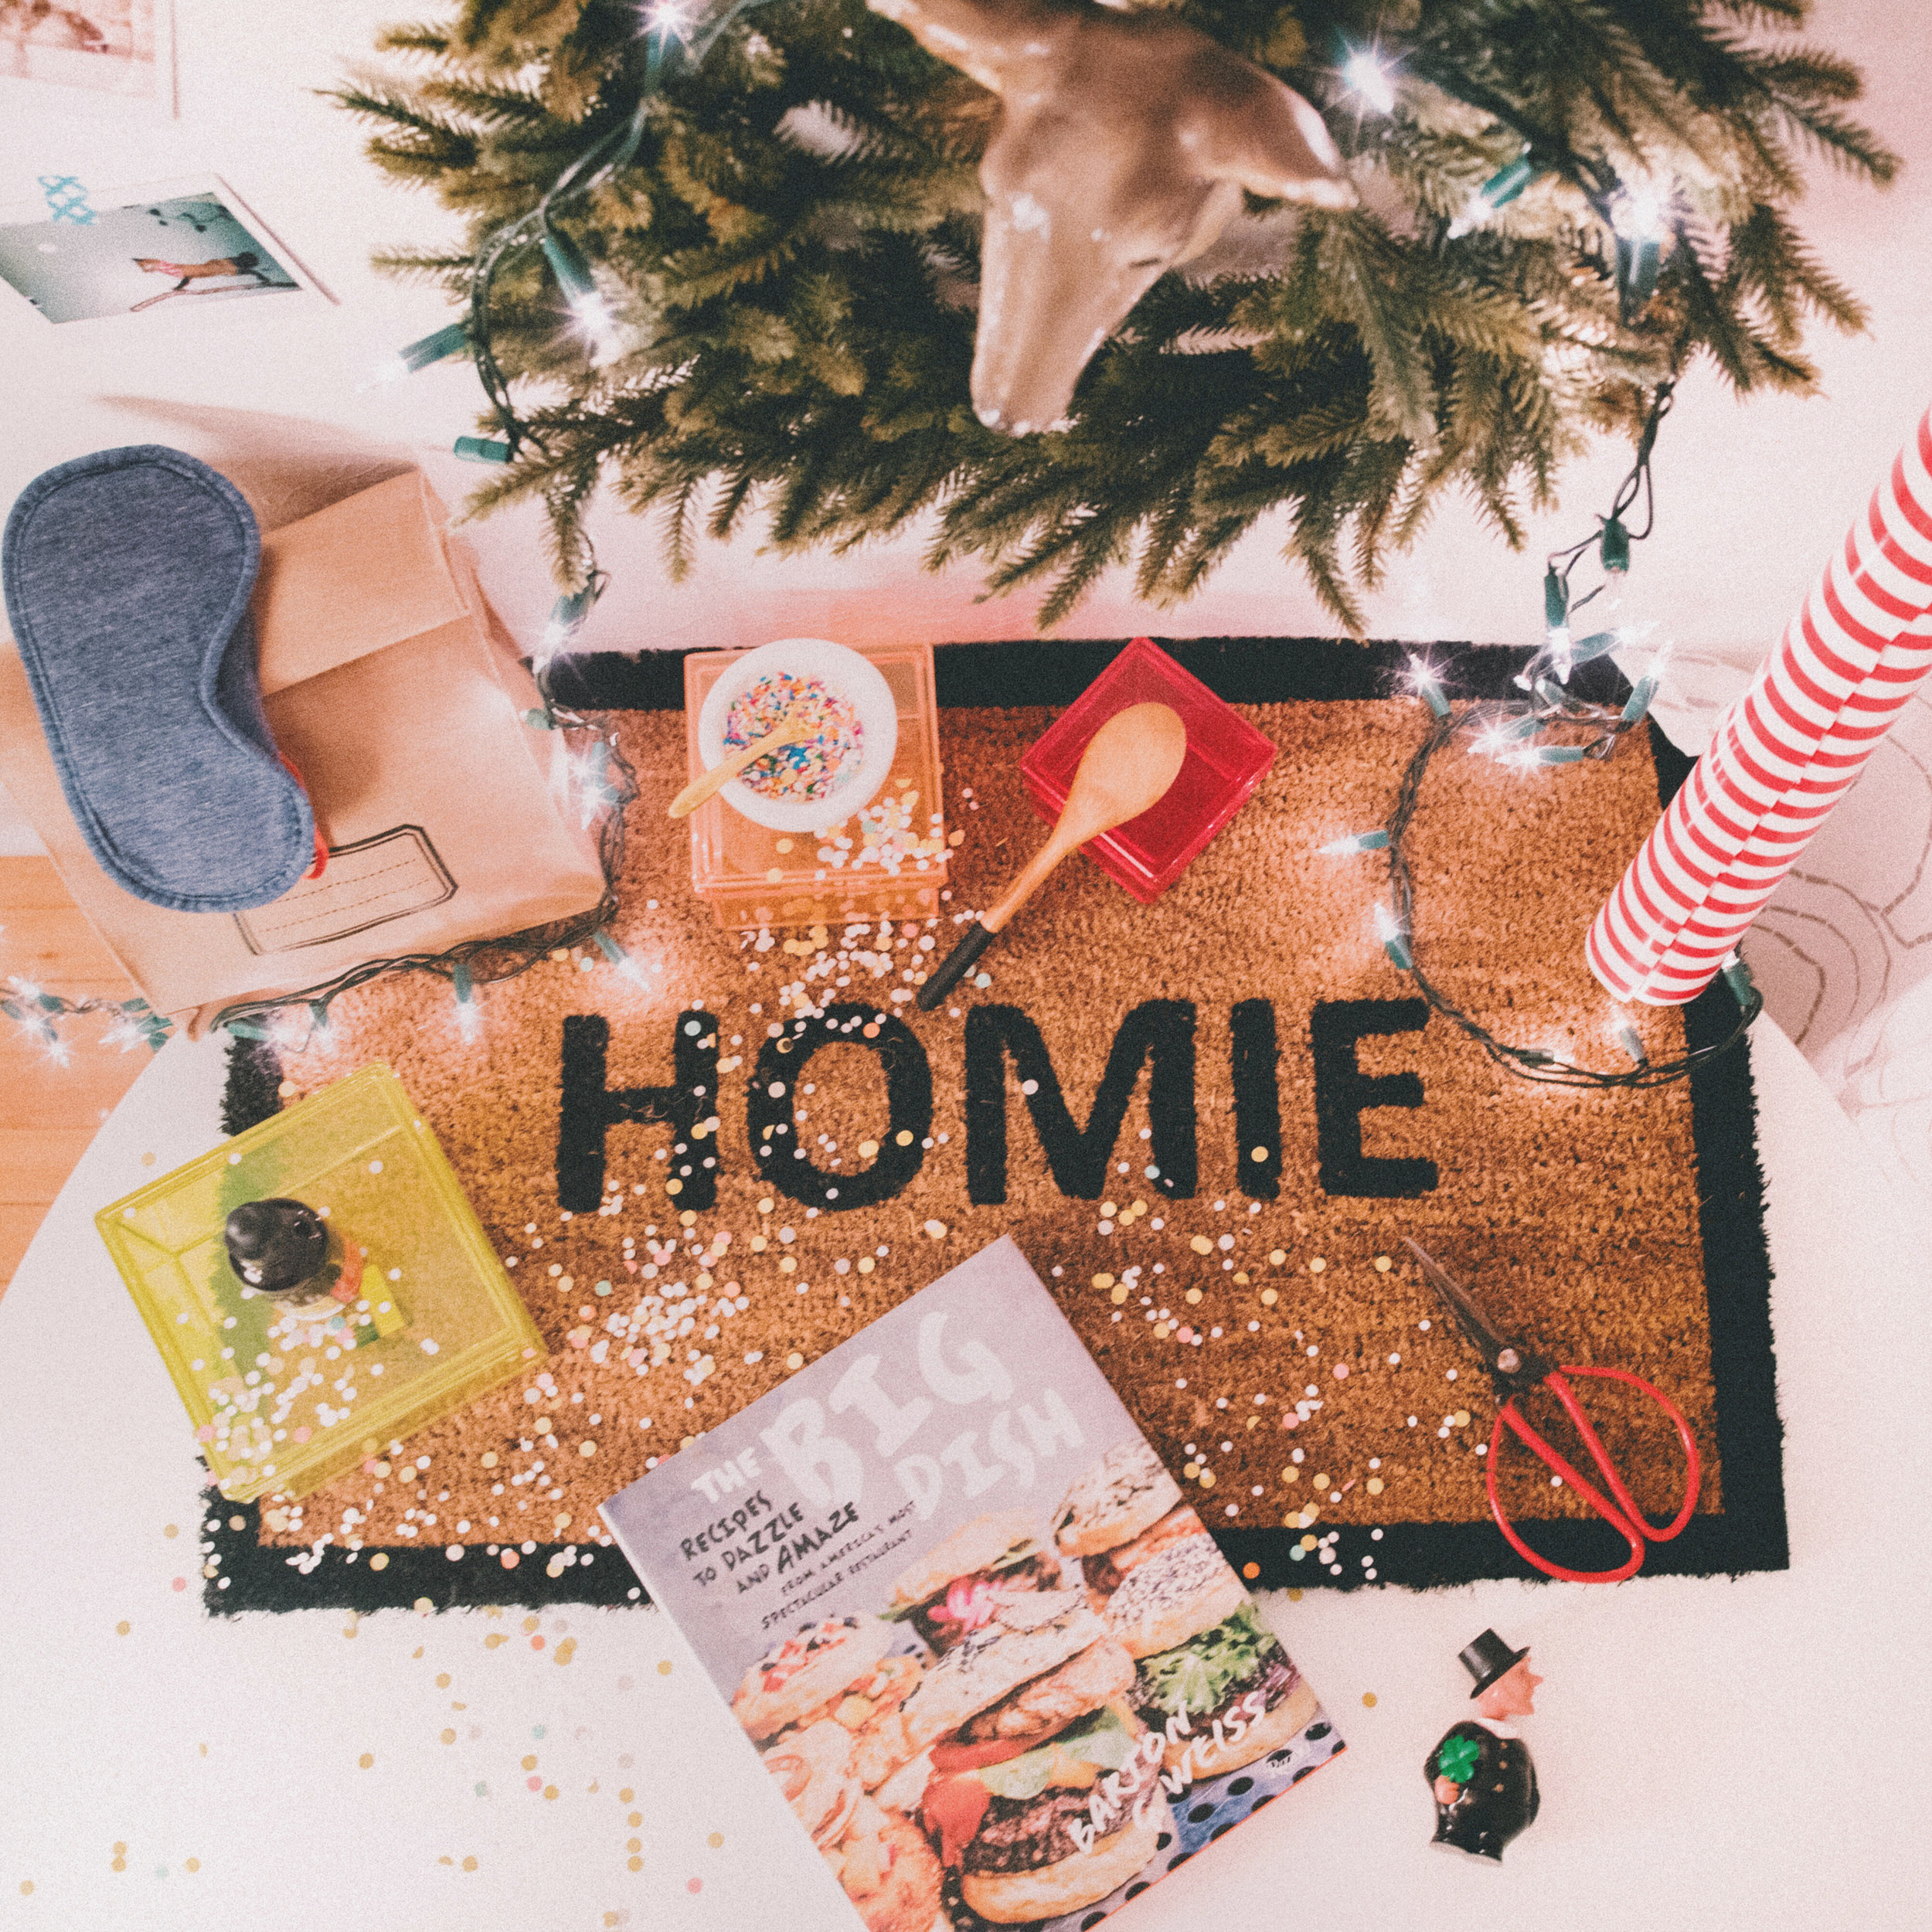 Very welcoming homie doormat by Drake General Store - HOME GIFT IDEAS - THE ULTIMATE GIFT LIST FOR MODERN MEN